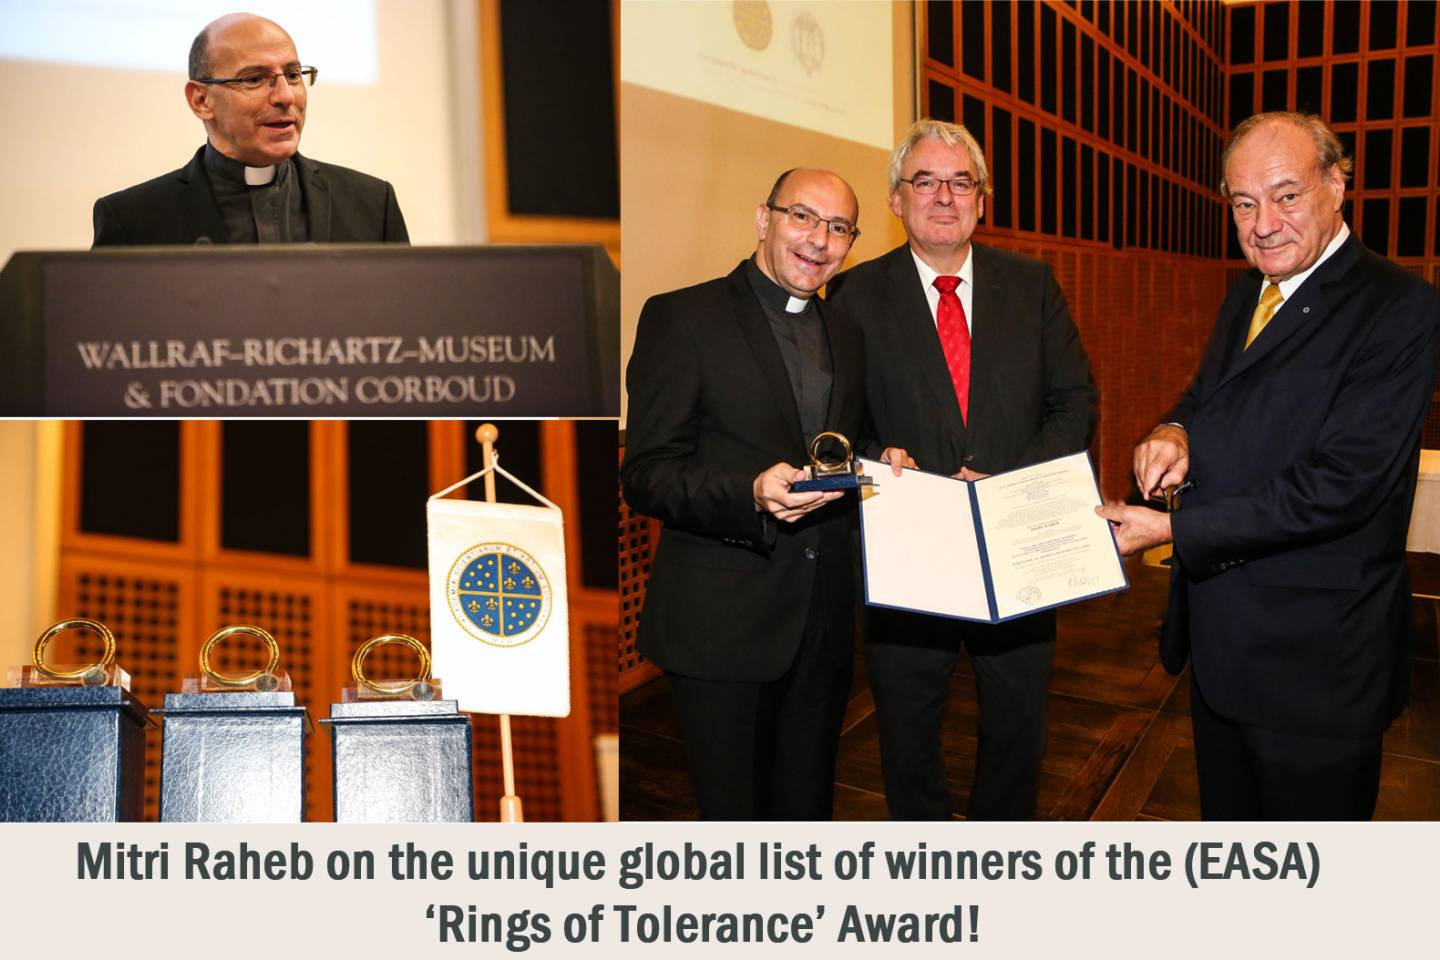 Rev. Dr. Mitri Raheb receives the prestigious Tolerance Ring Award in Cologne-Germany!